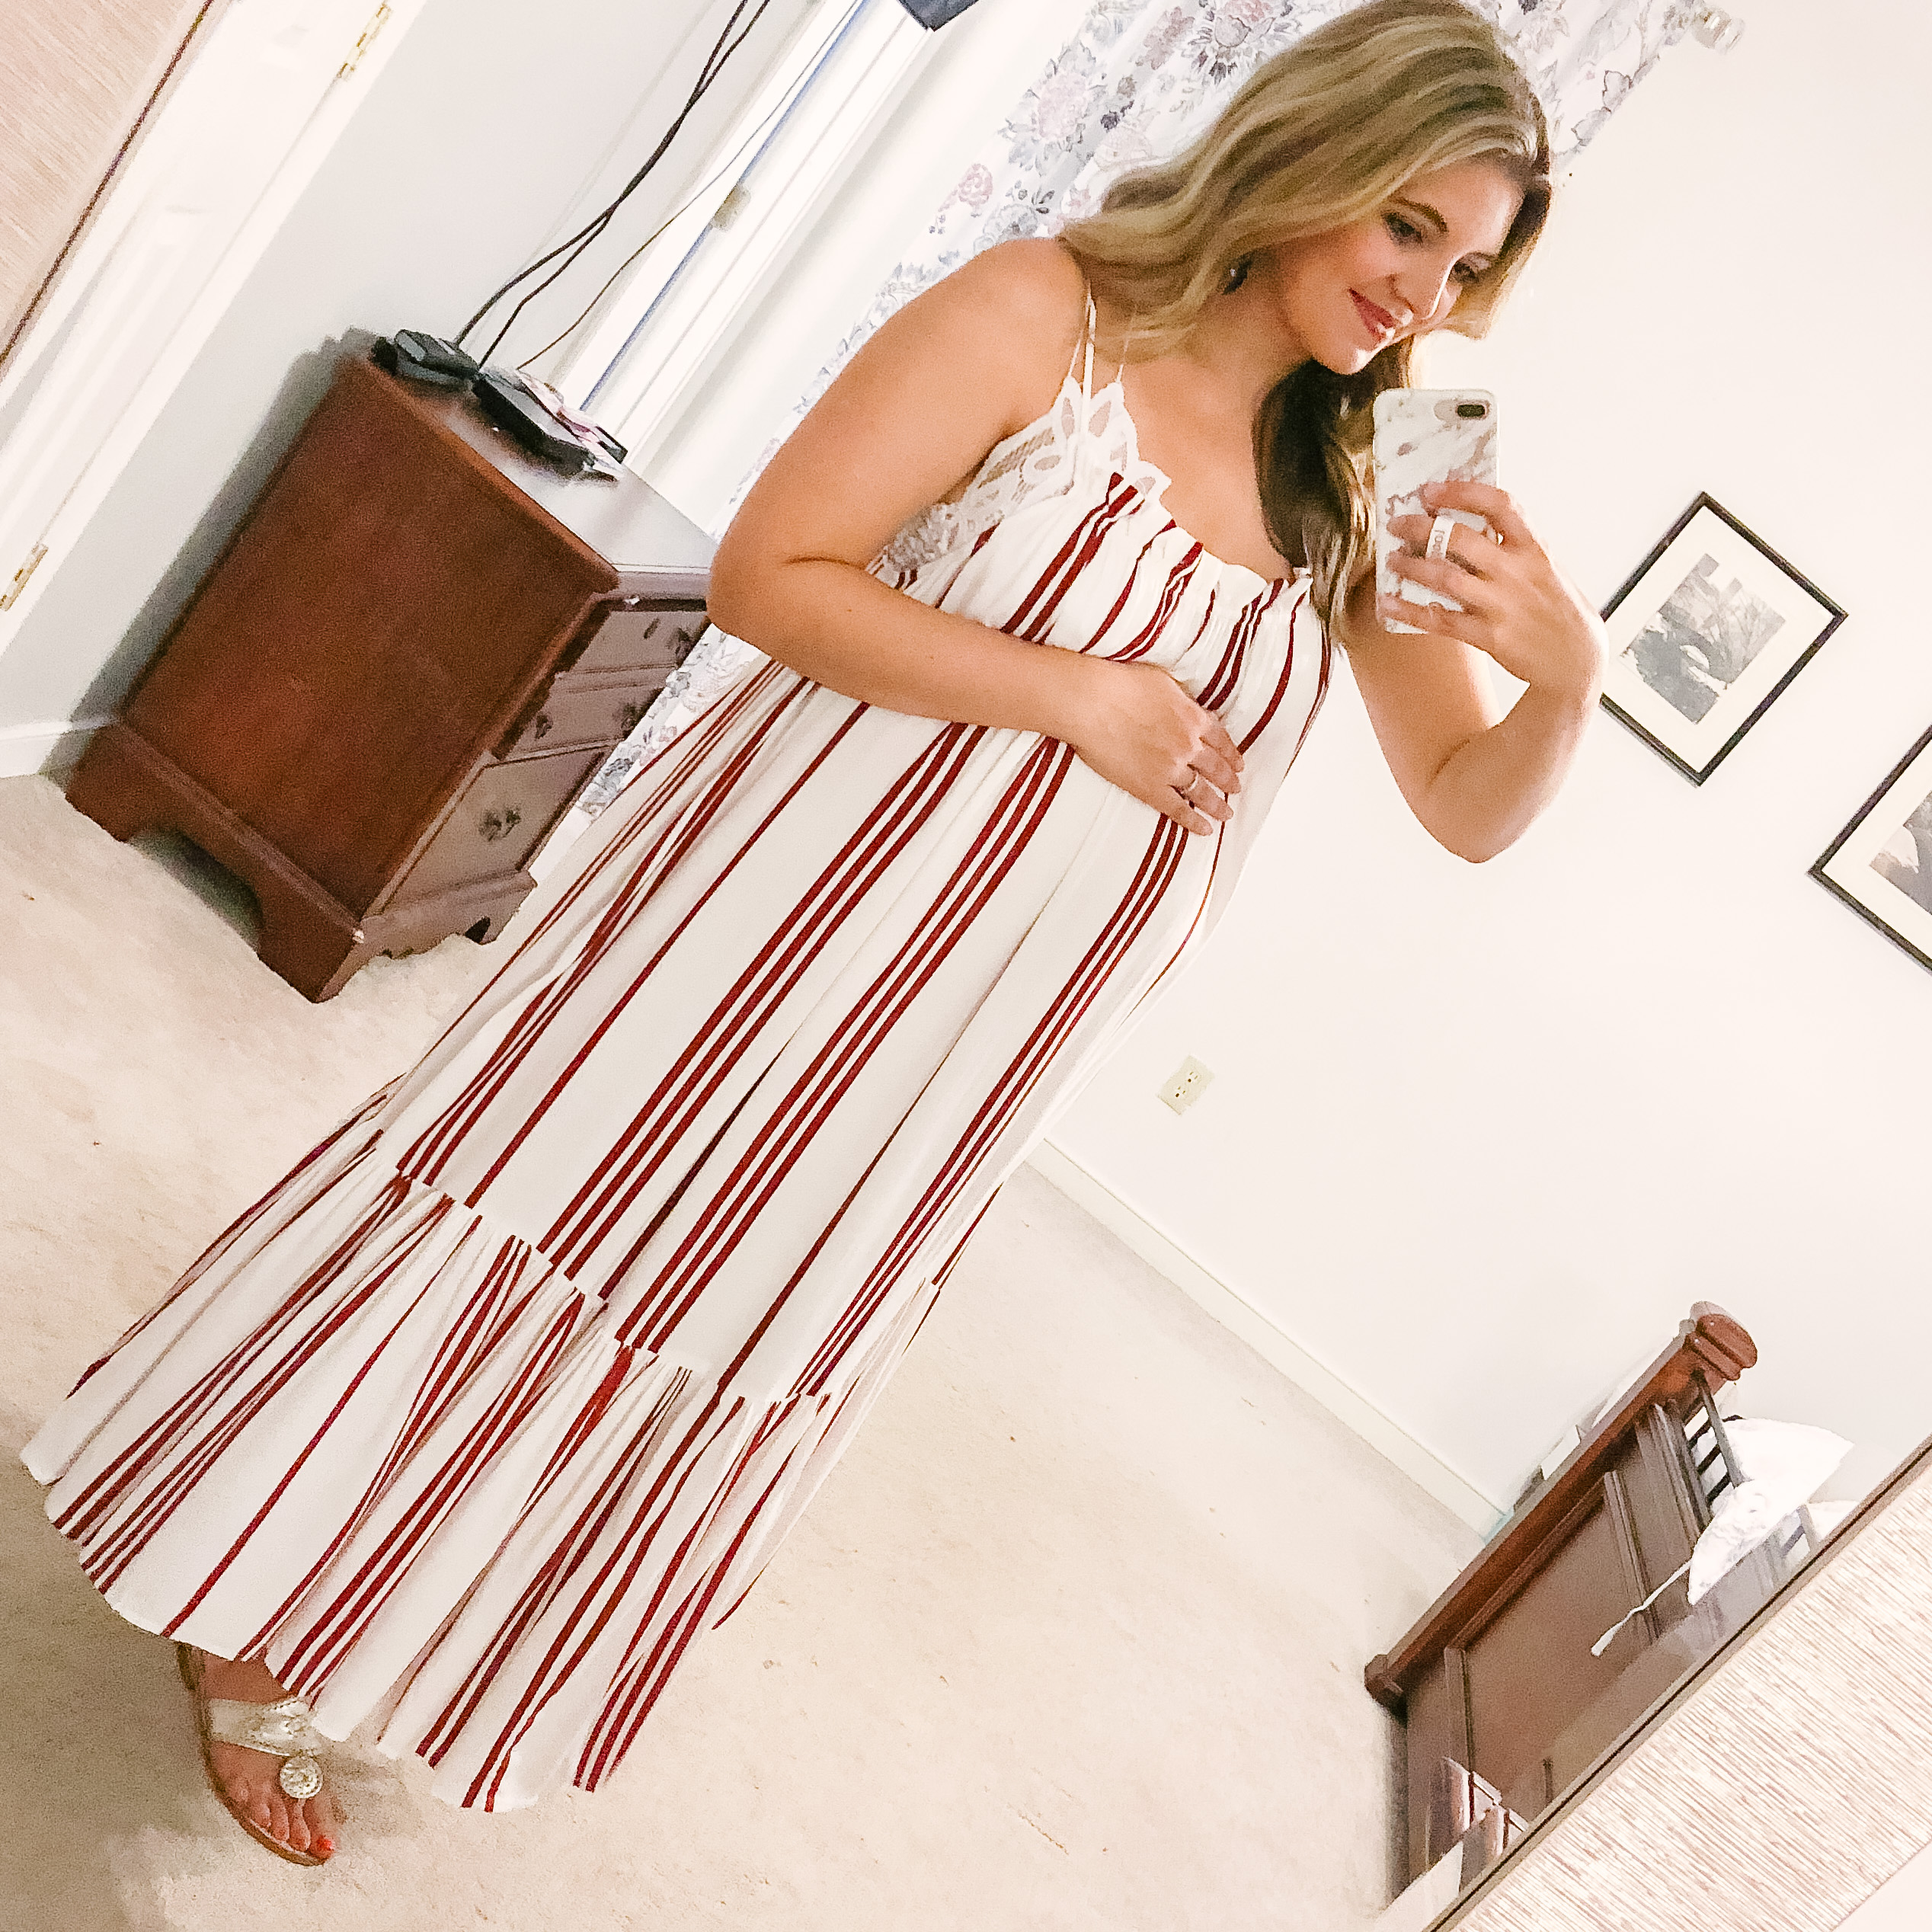 cutest patriotic outfit ideas - I love this dress for the 4th of july! | patriotic outfit roundup - come see over 15 4th of july outfit ideas! bylaurenm.com